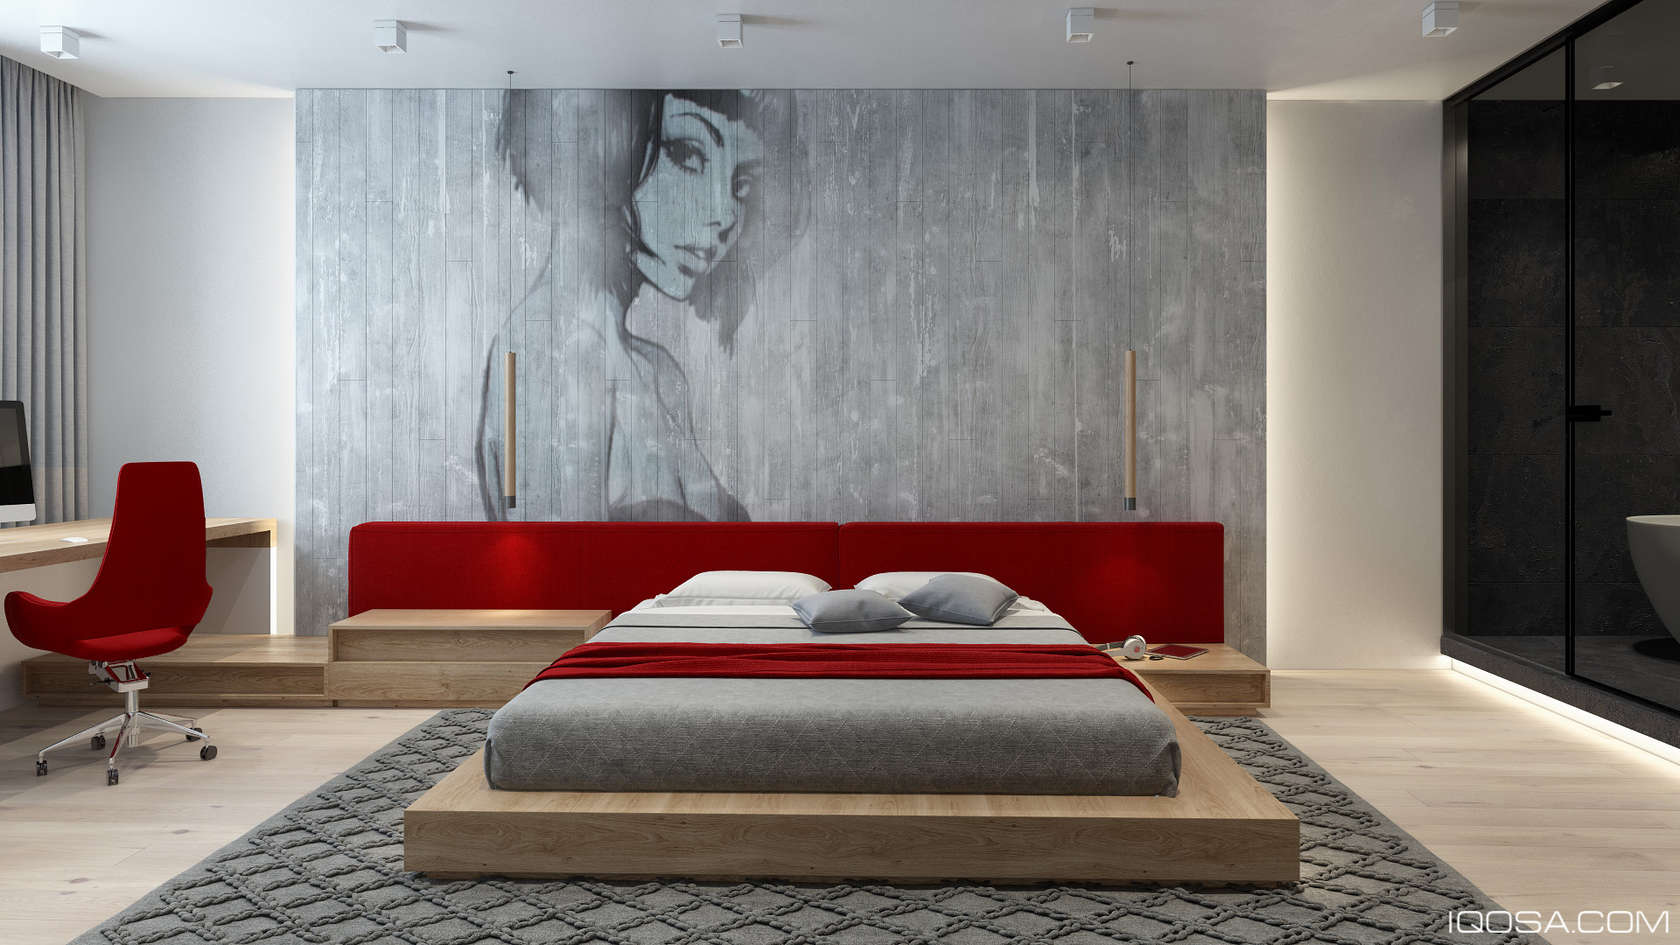 Bedroom Mural Inspiration - An approachable take on luxury apartment design